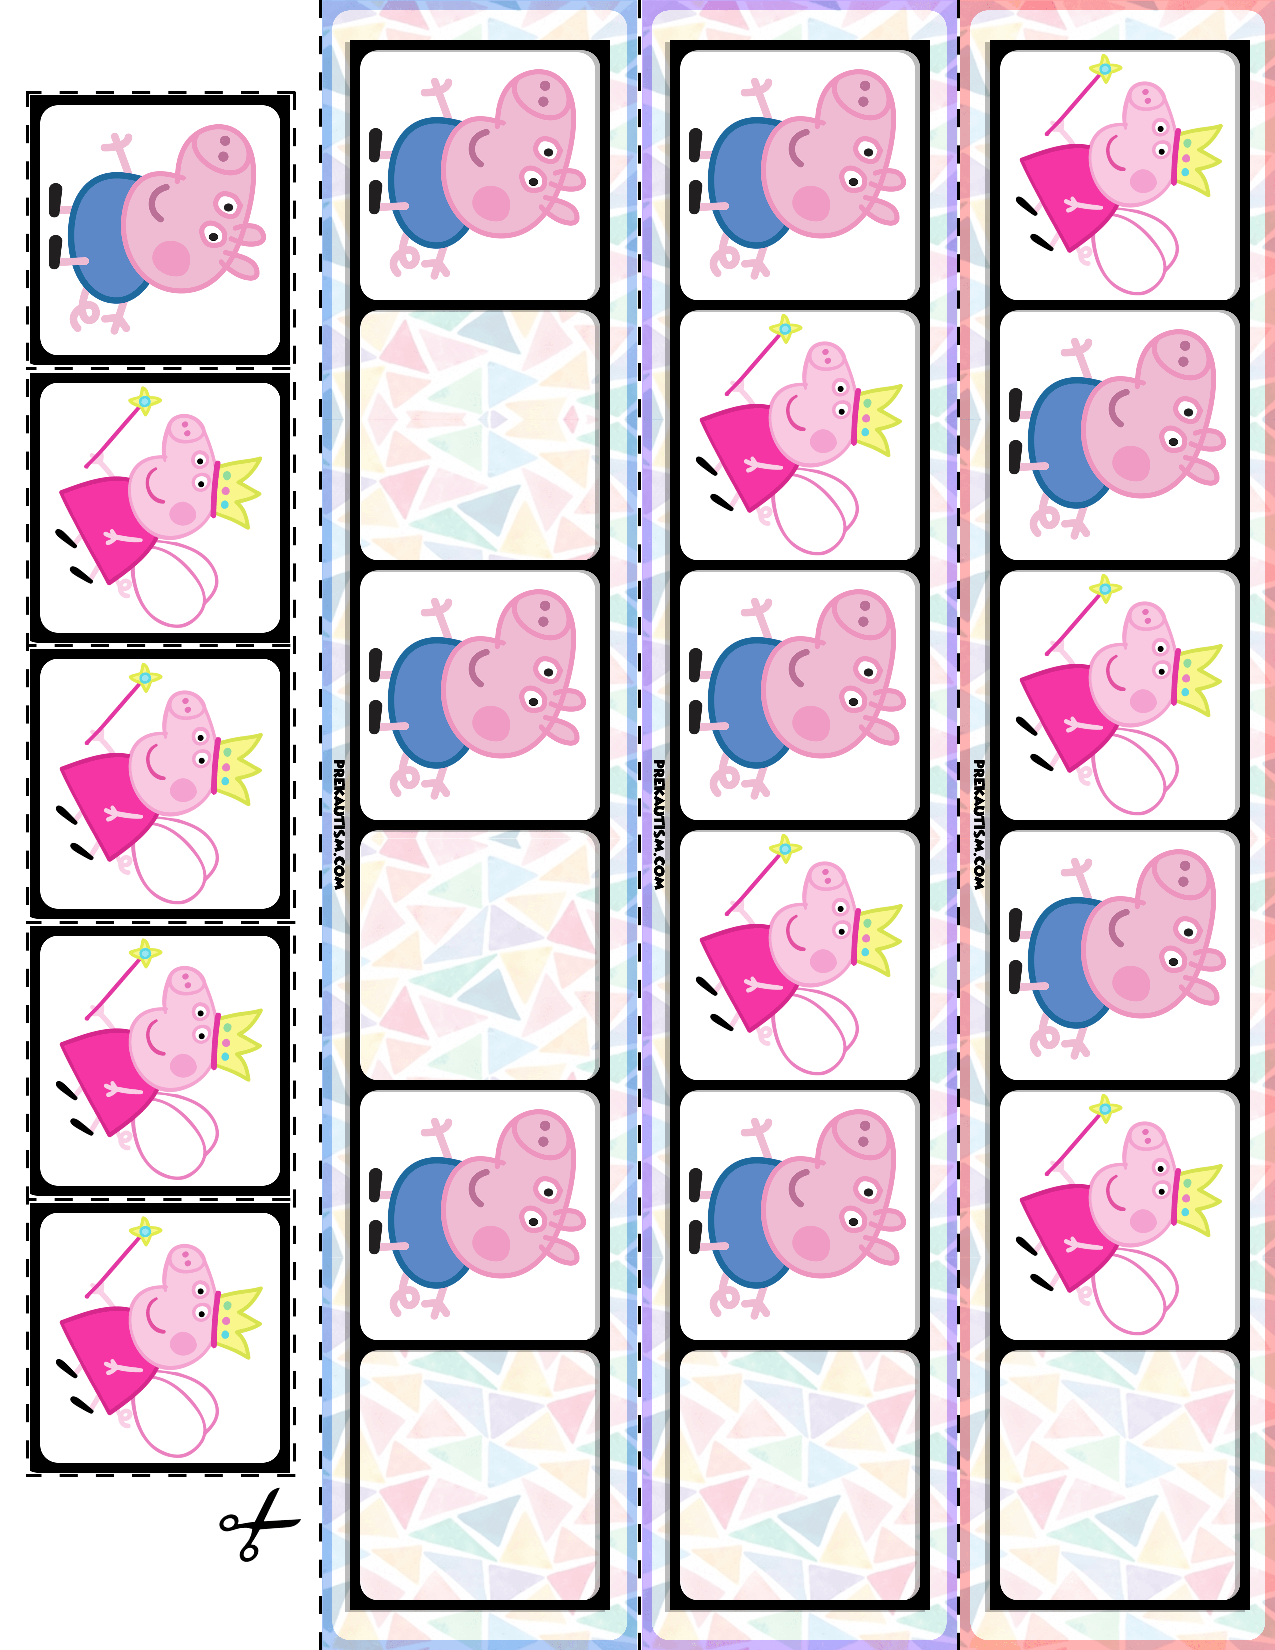 Preschool Peppa Pig Pattern Cards